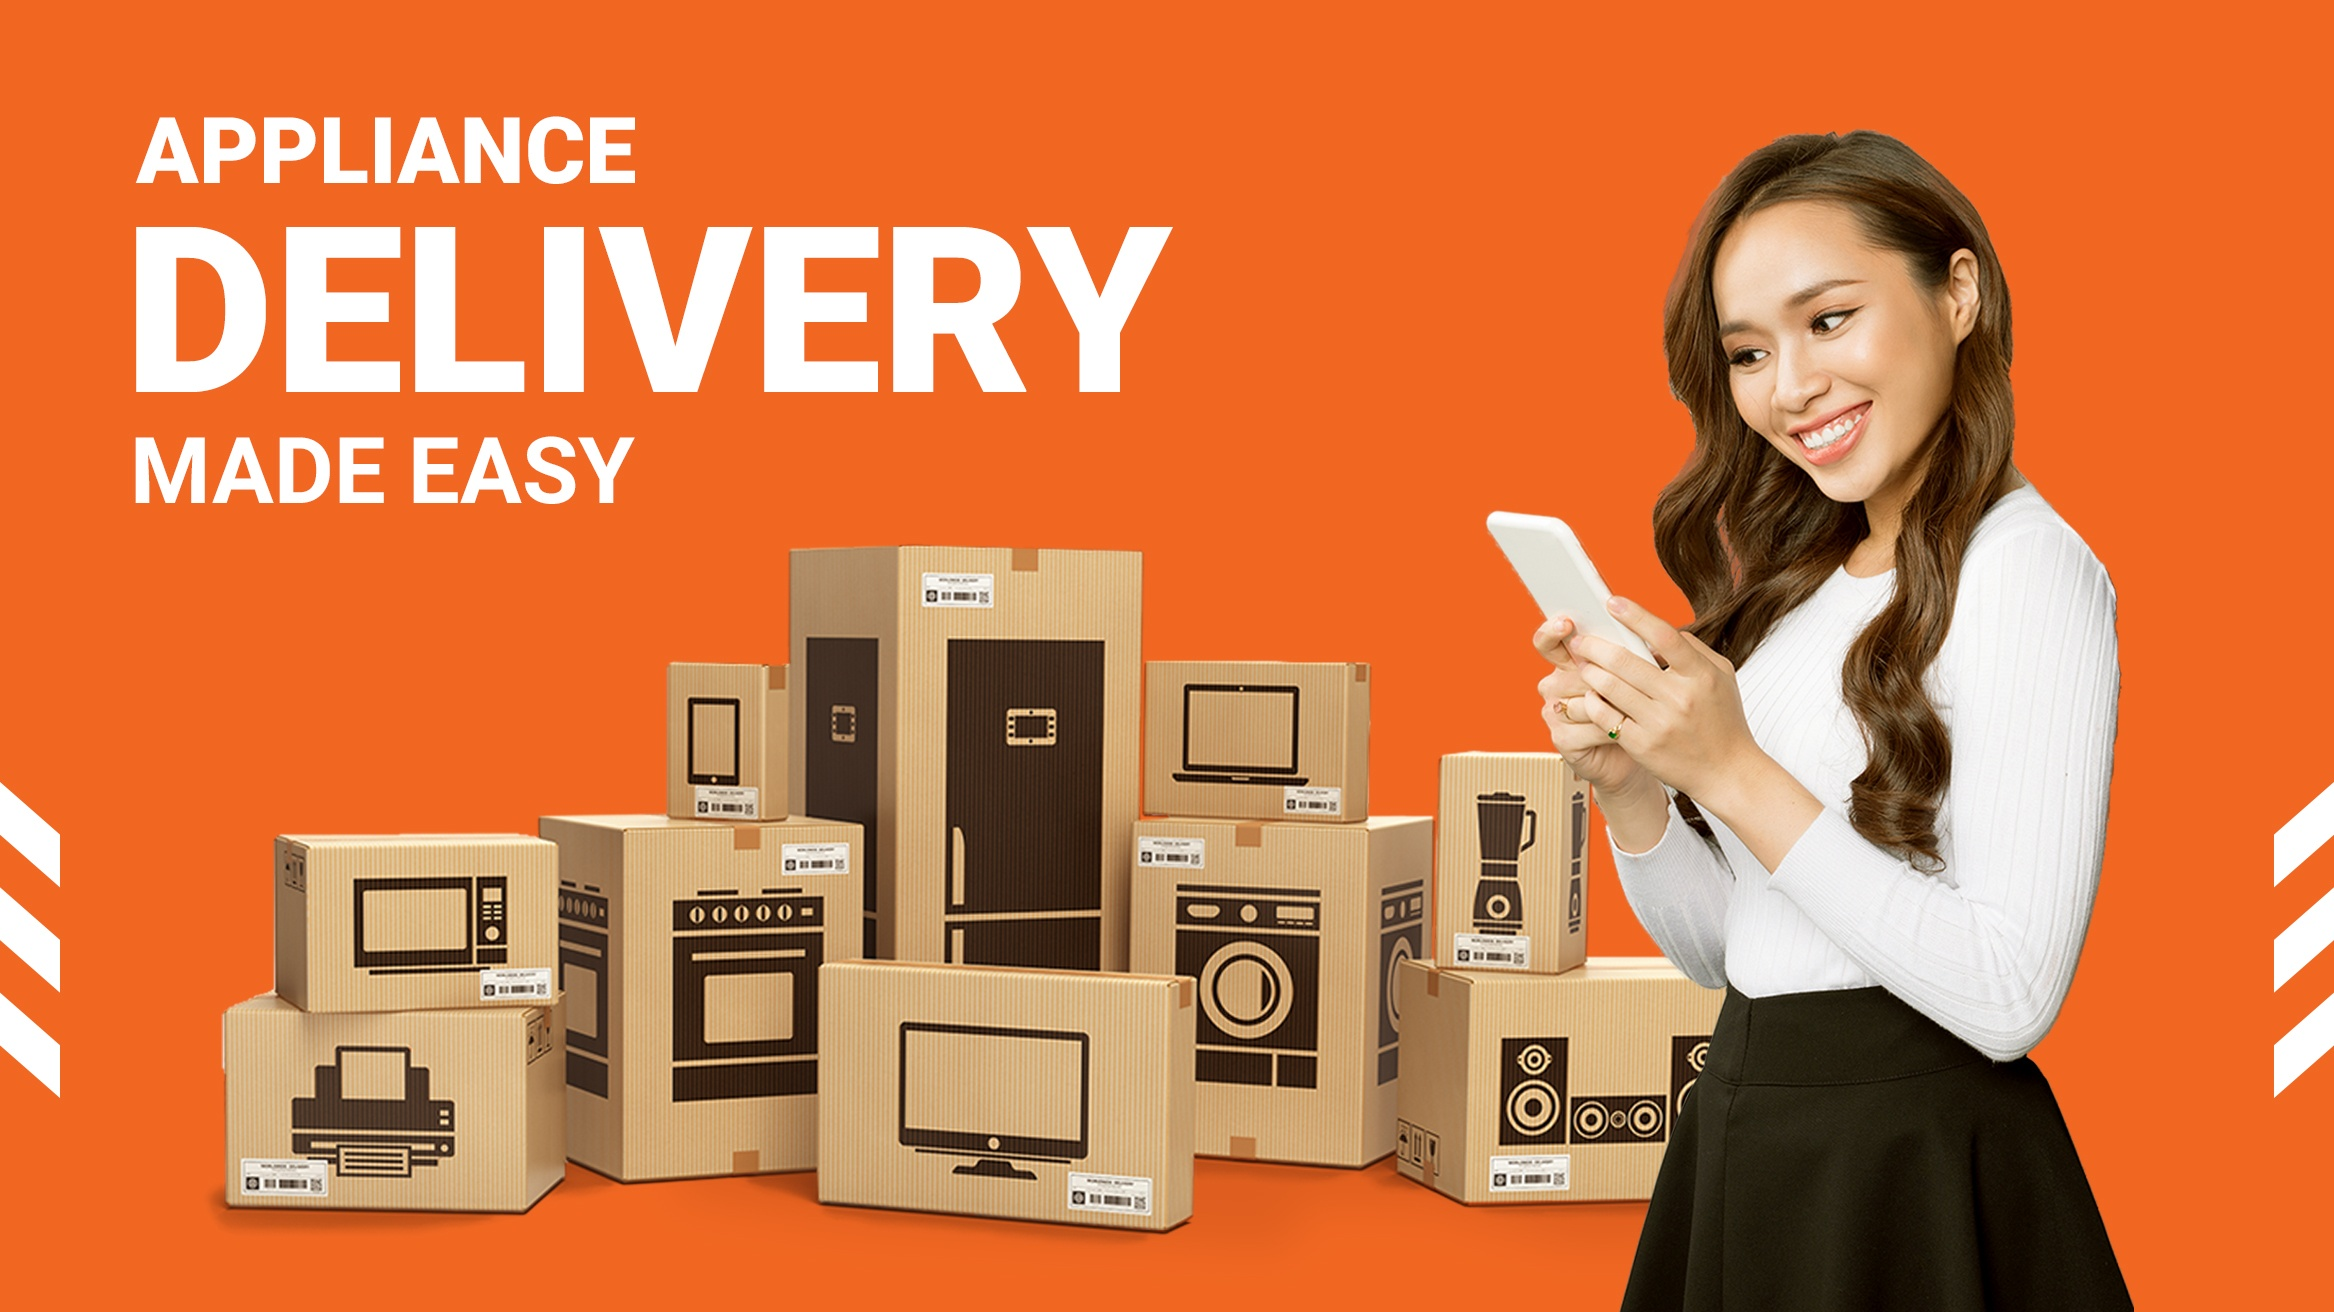 Hassle-Free Appliance Delivery and Other Bulky Items with Lalamove!